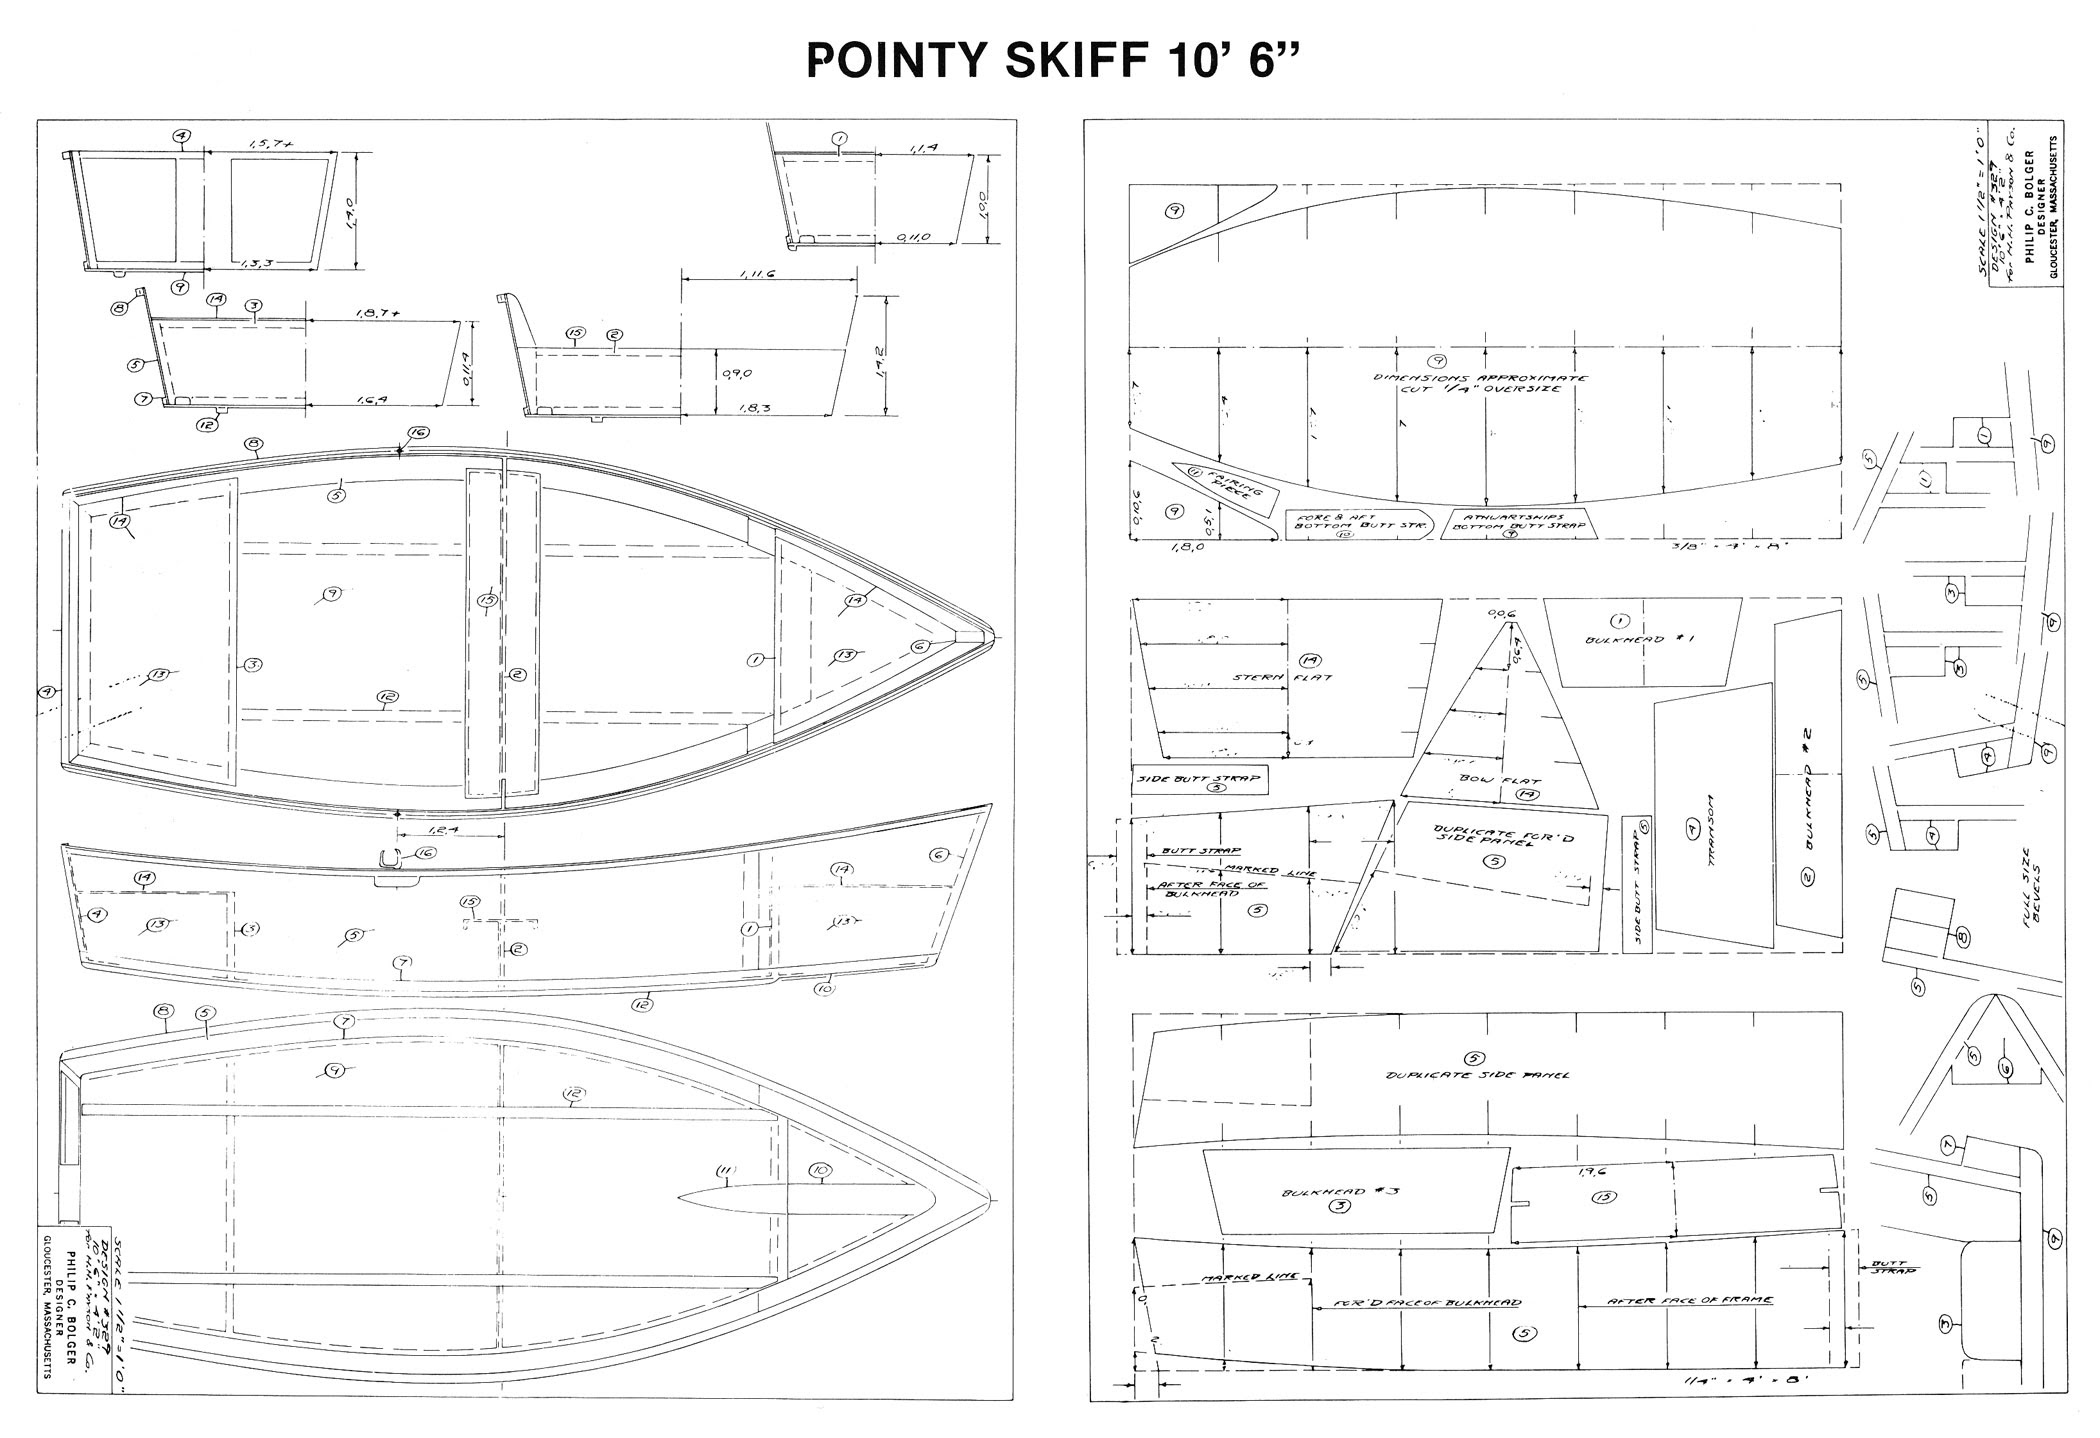 Small Boat Building Plans Free | Search Results | DIY Woodworking